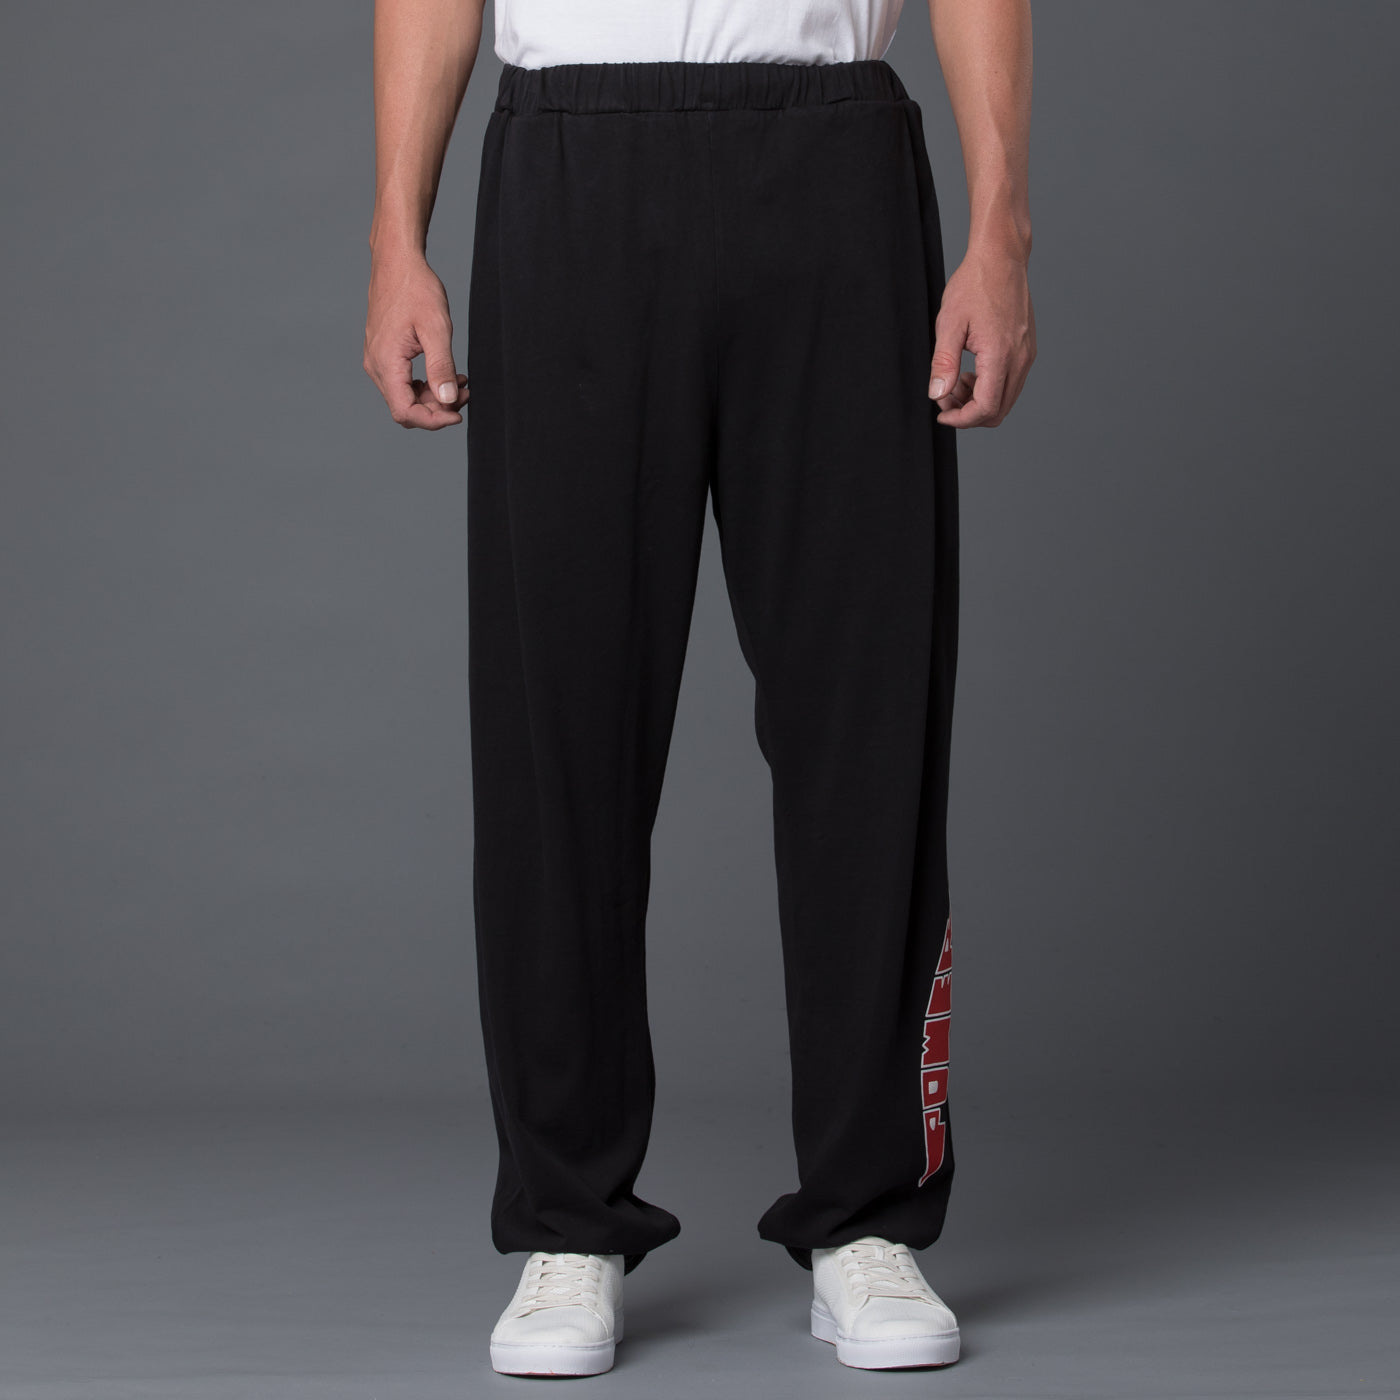 Willy Chavarria Cholo Sweatpant